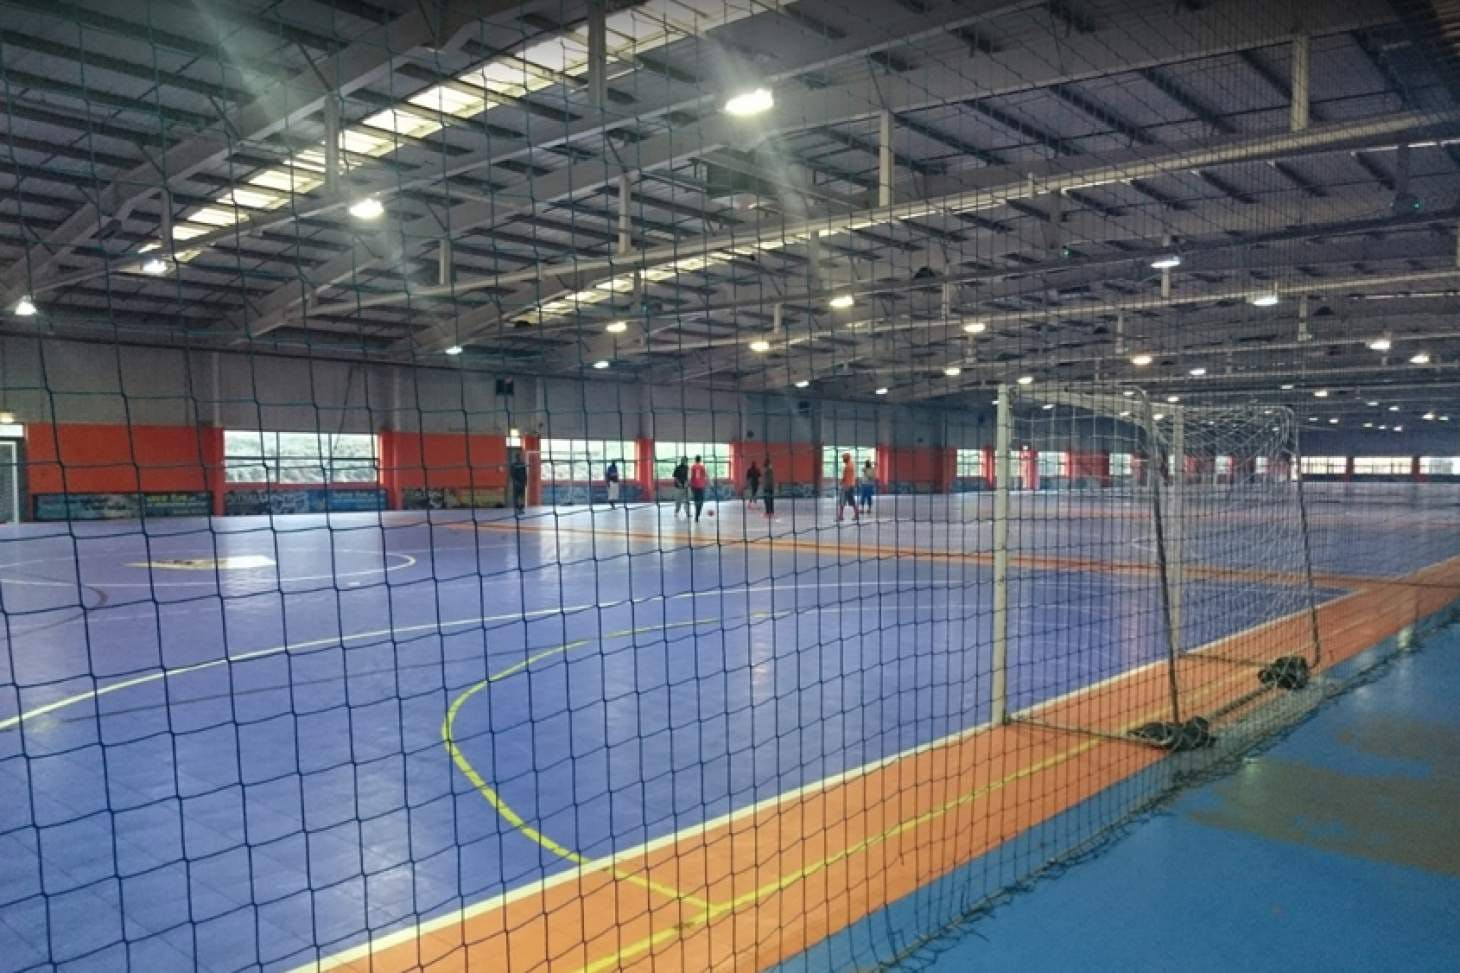 PlayFootball Birmingham Pitch | 3G Astroturf futsal pitch